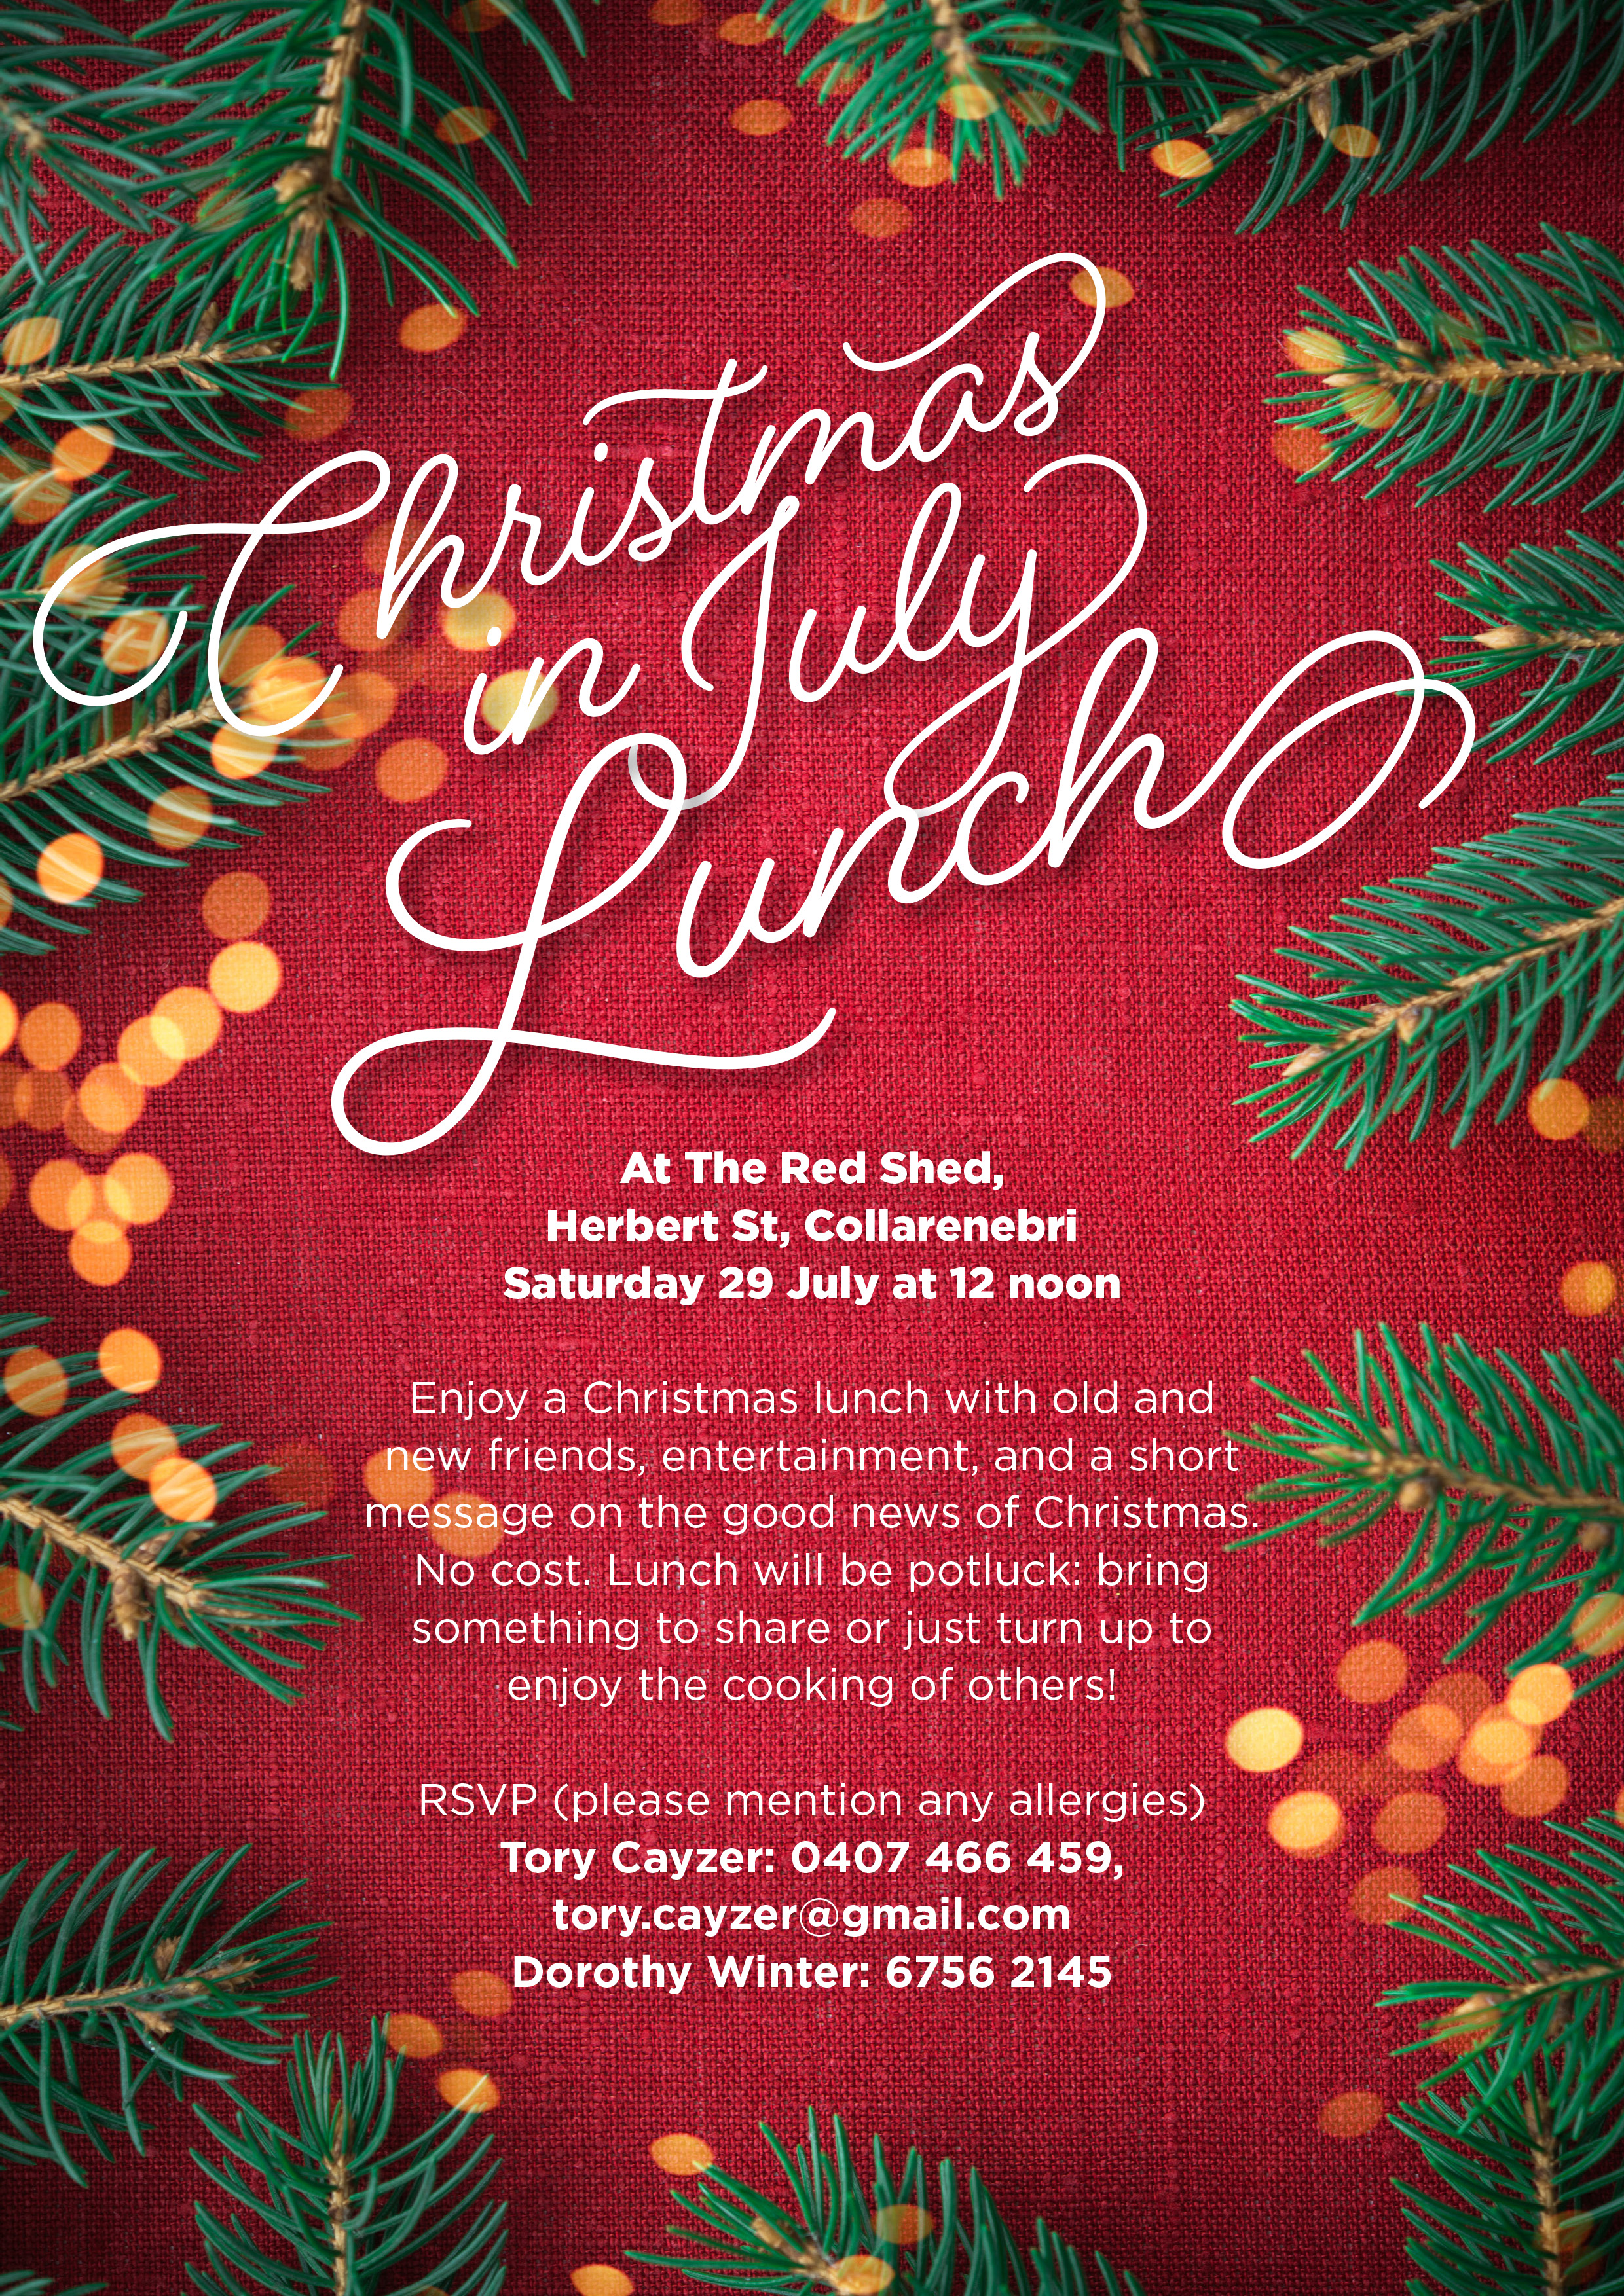 colly christmas in july lunch 12noon saturday 29 july barwon district anglican churches - Christmas In July Australia